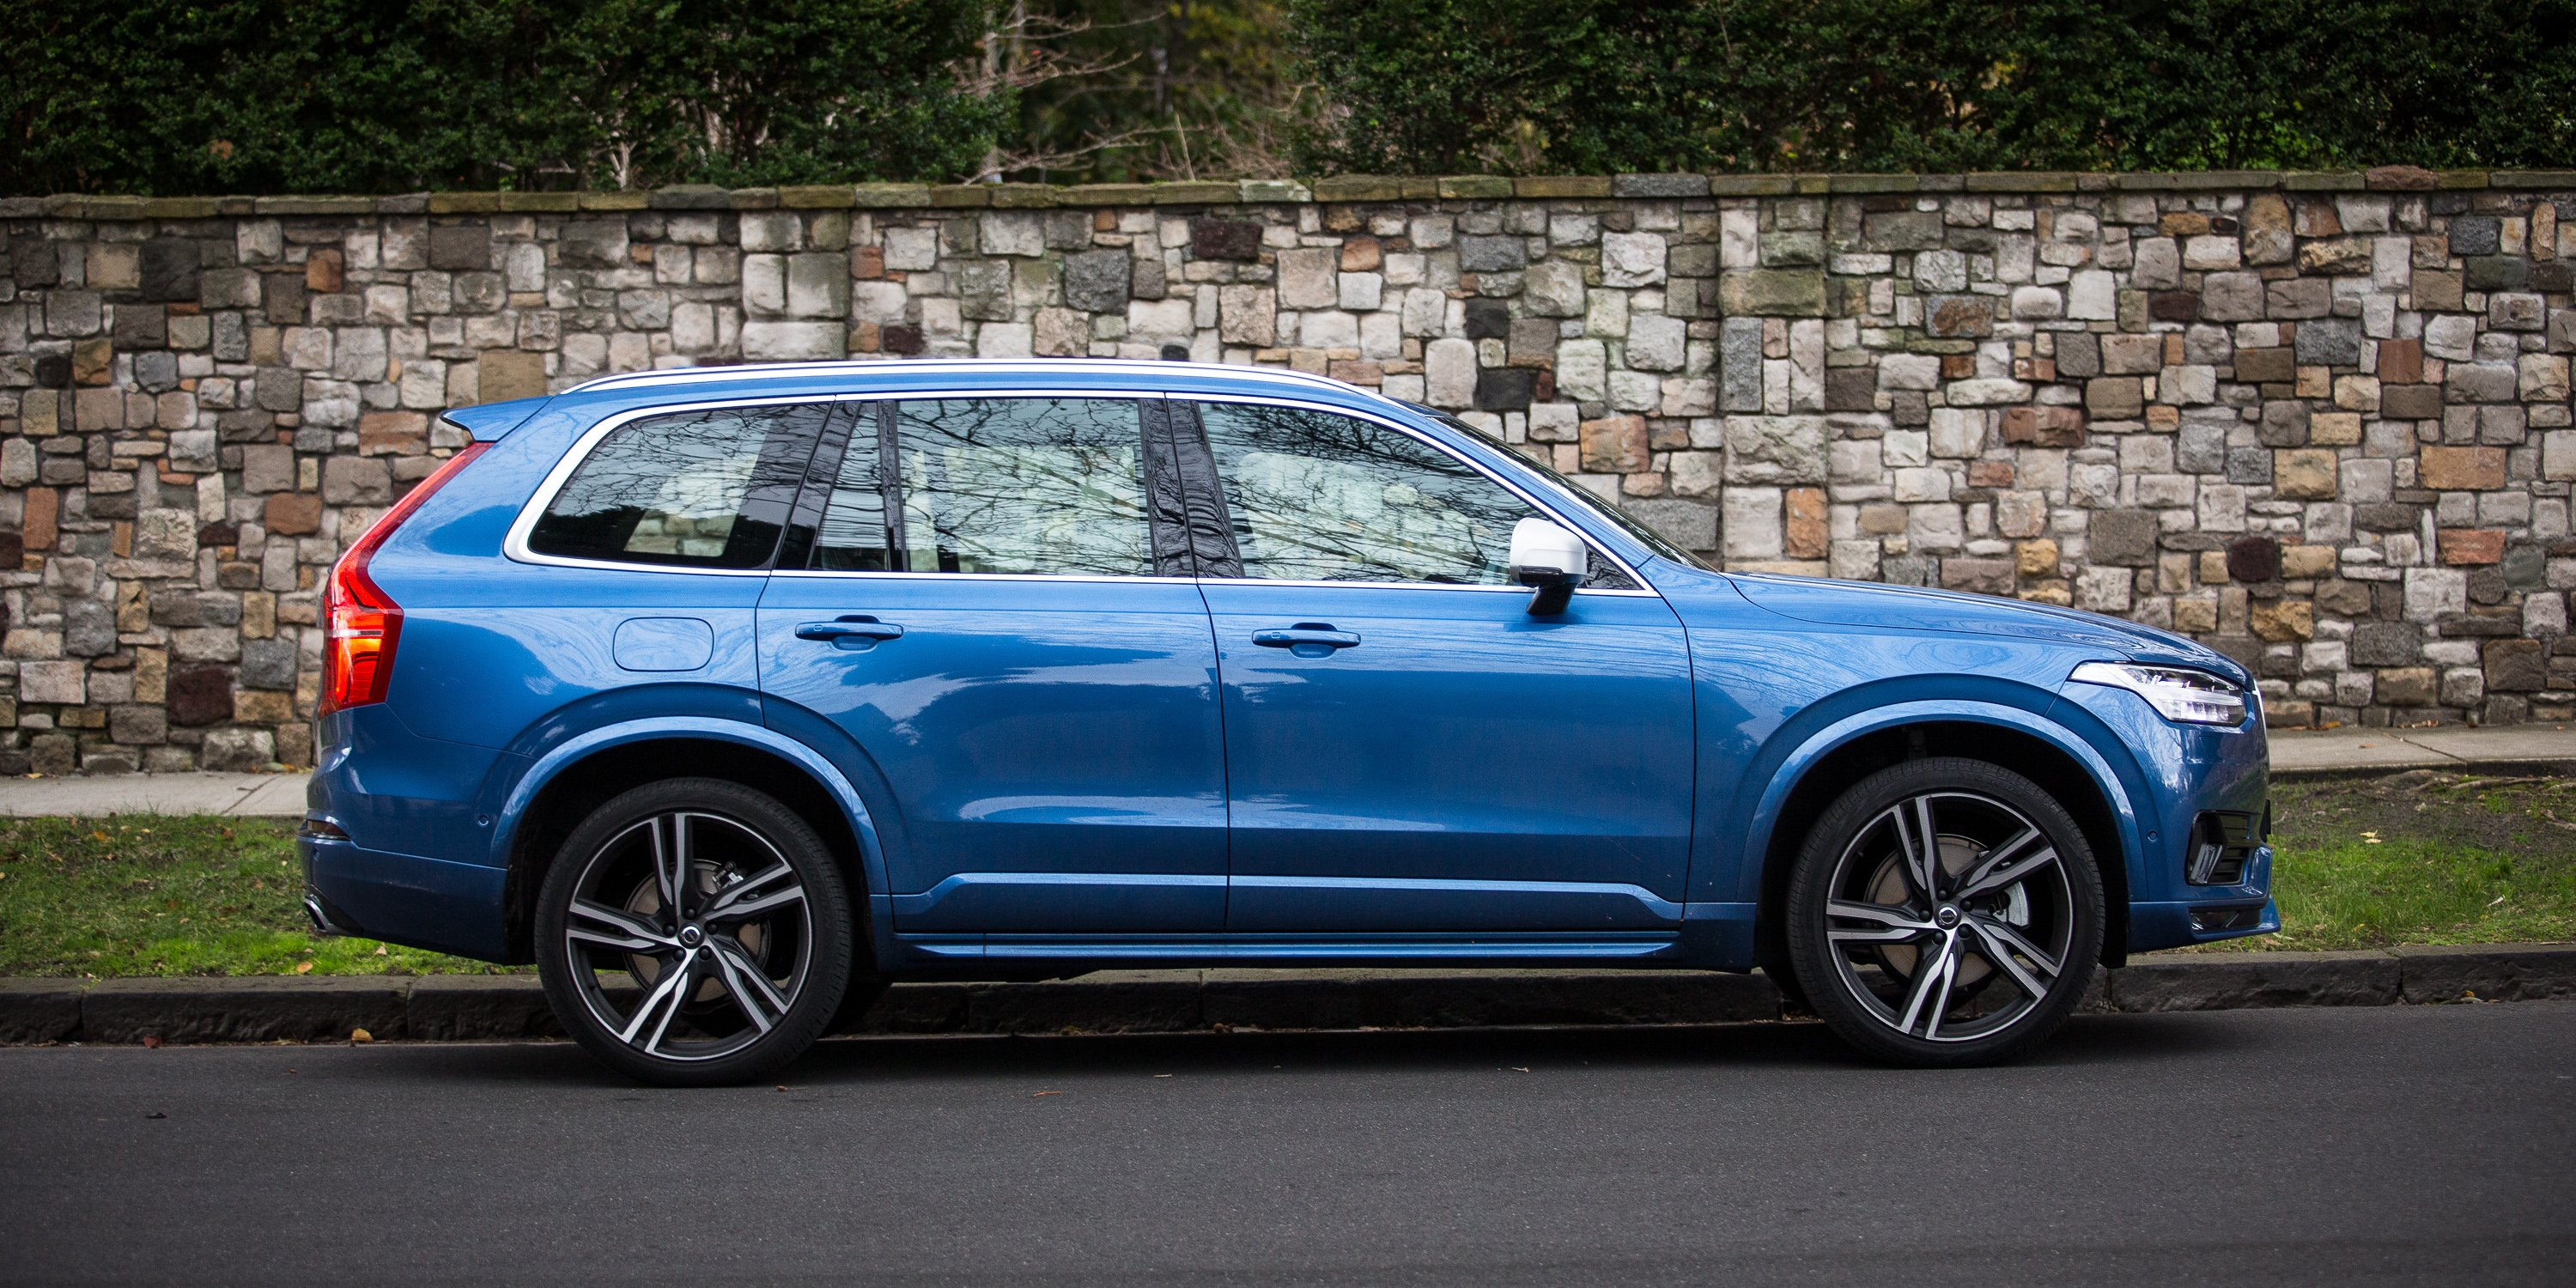 2016 volvo xc90 t6 r design review long term report two photos caradvice. Black Bedroom Furniture Sets. Home Design Ideas